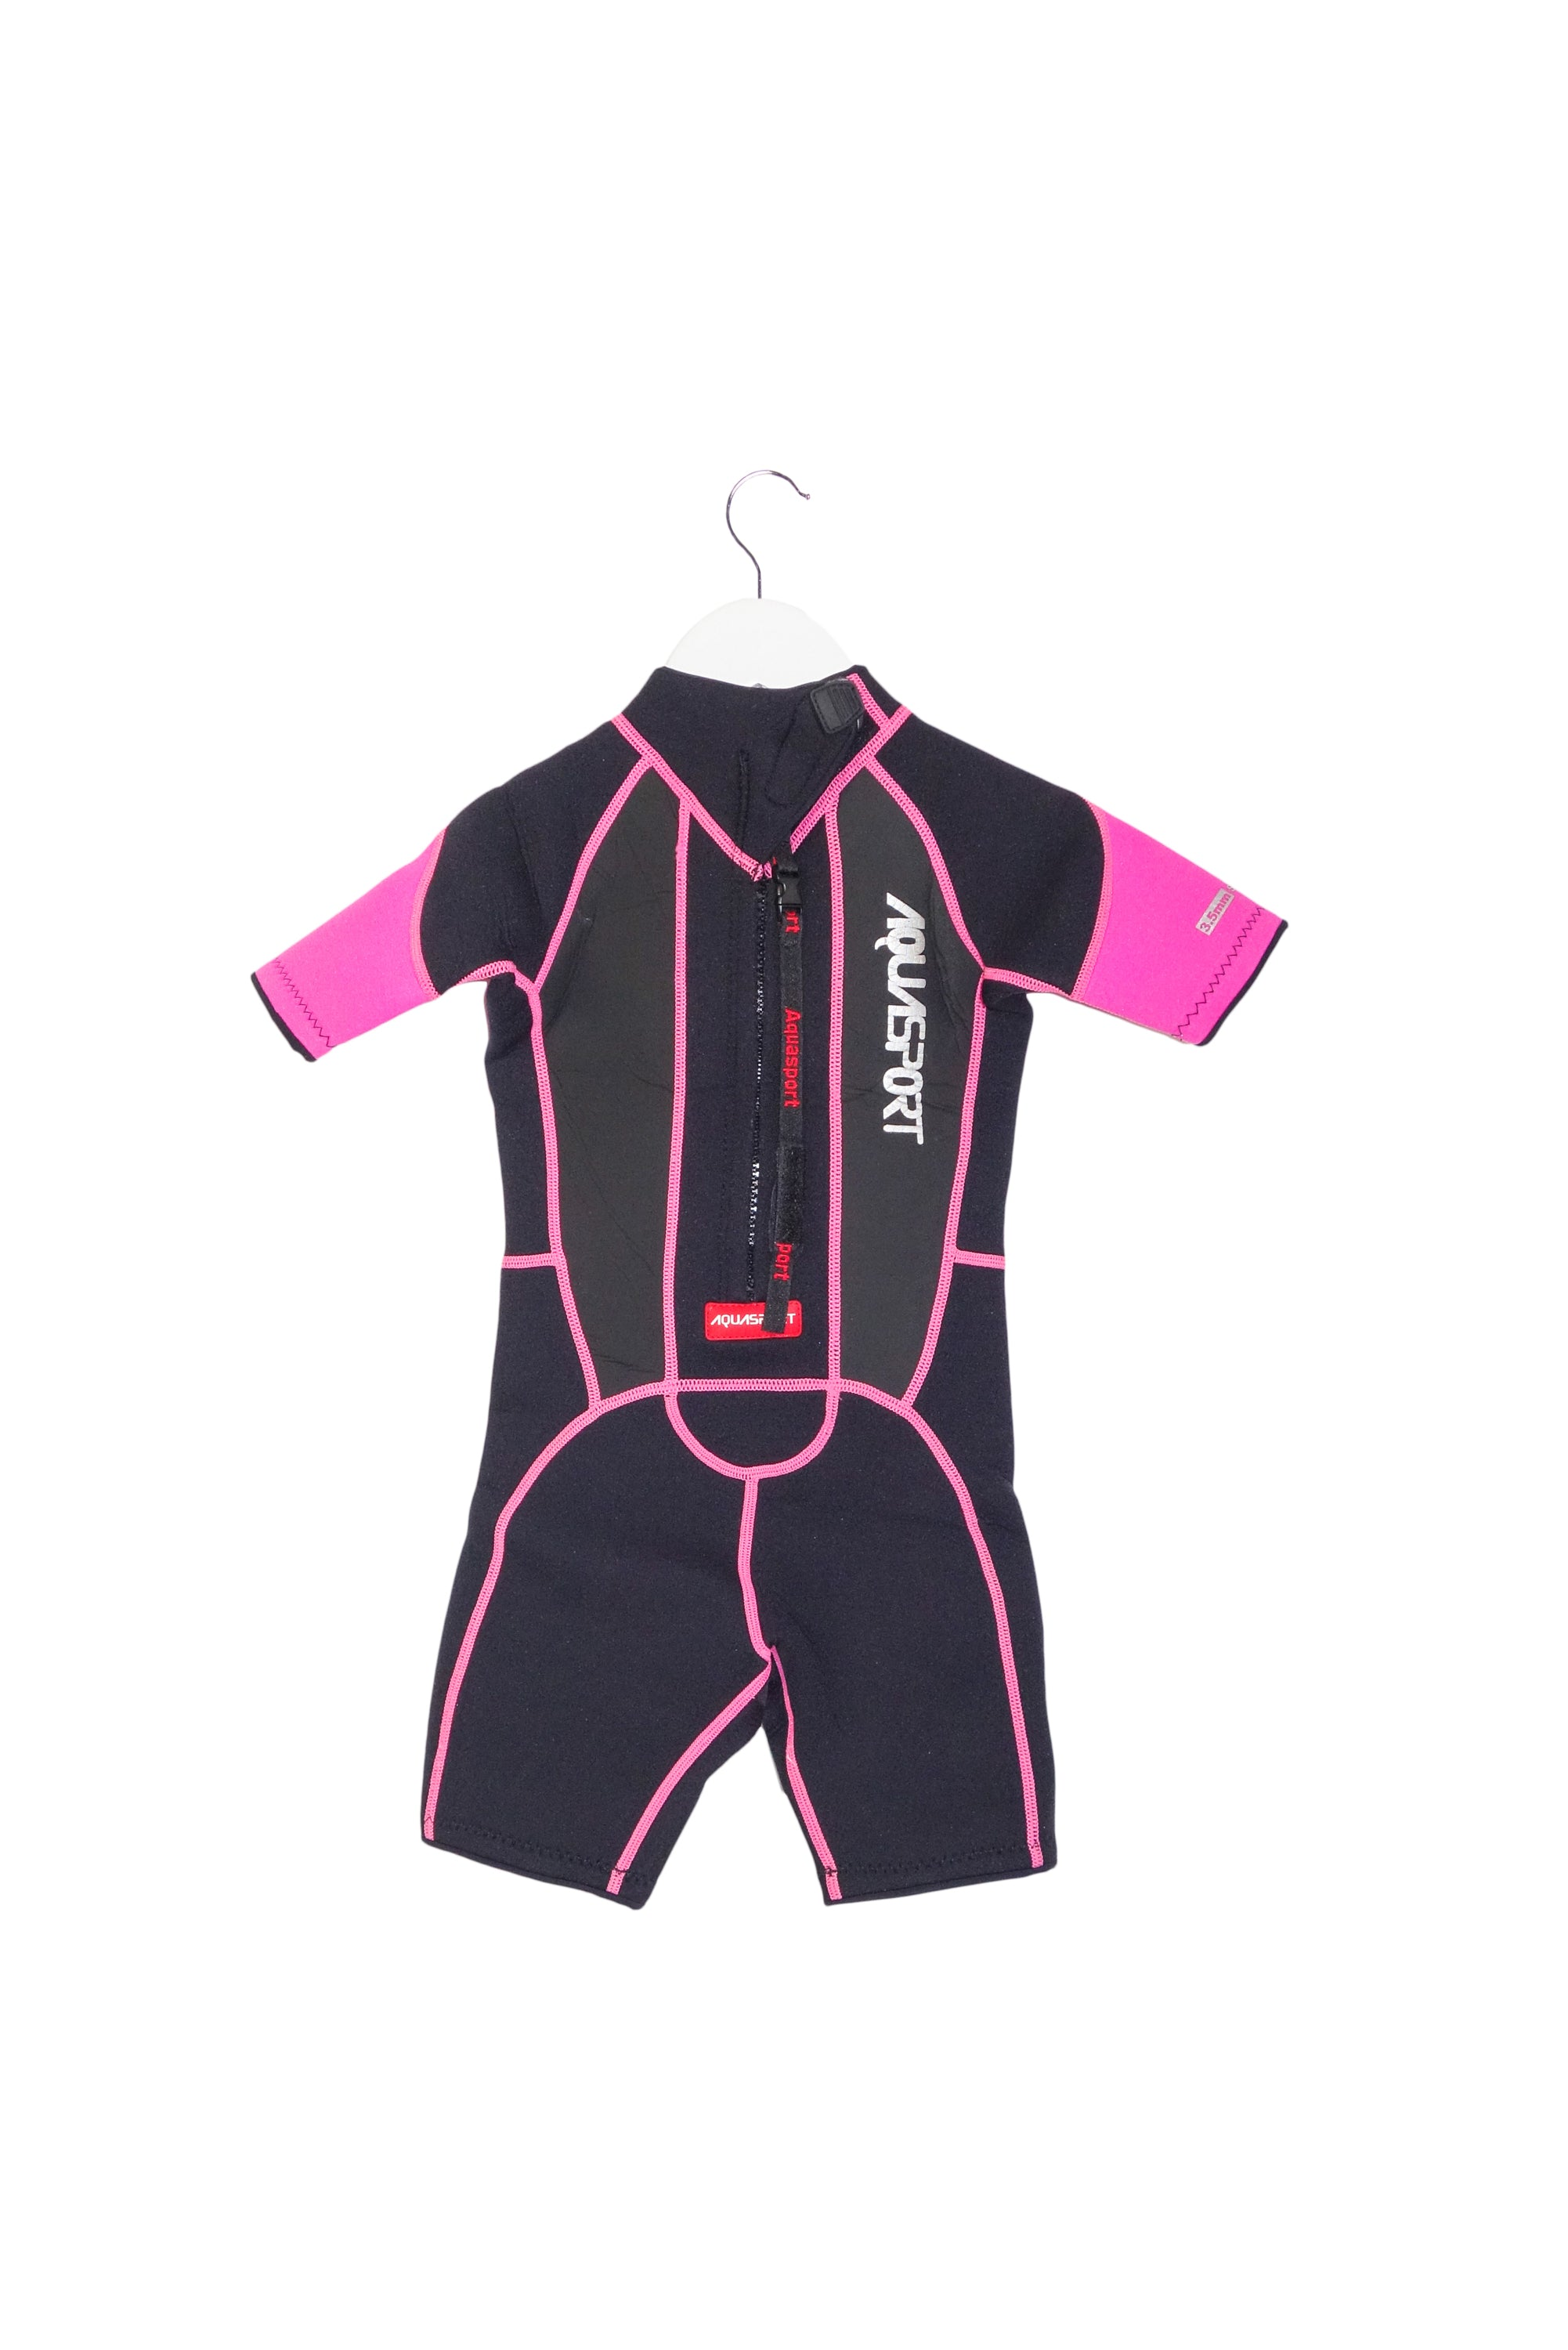 10013406 Aquasport Kids ~ Swimwear 6T at Retykle